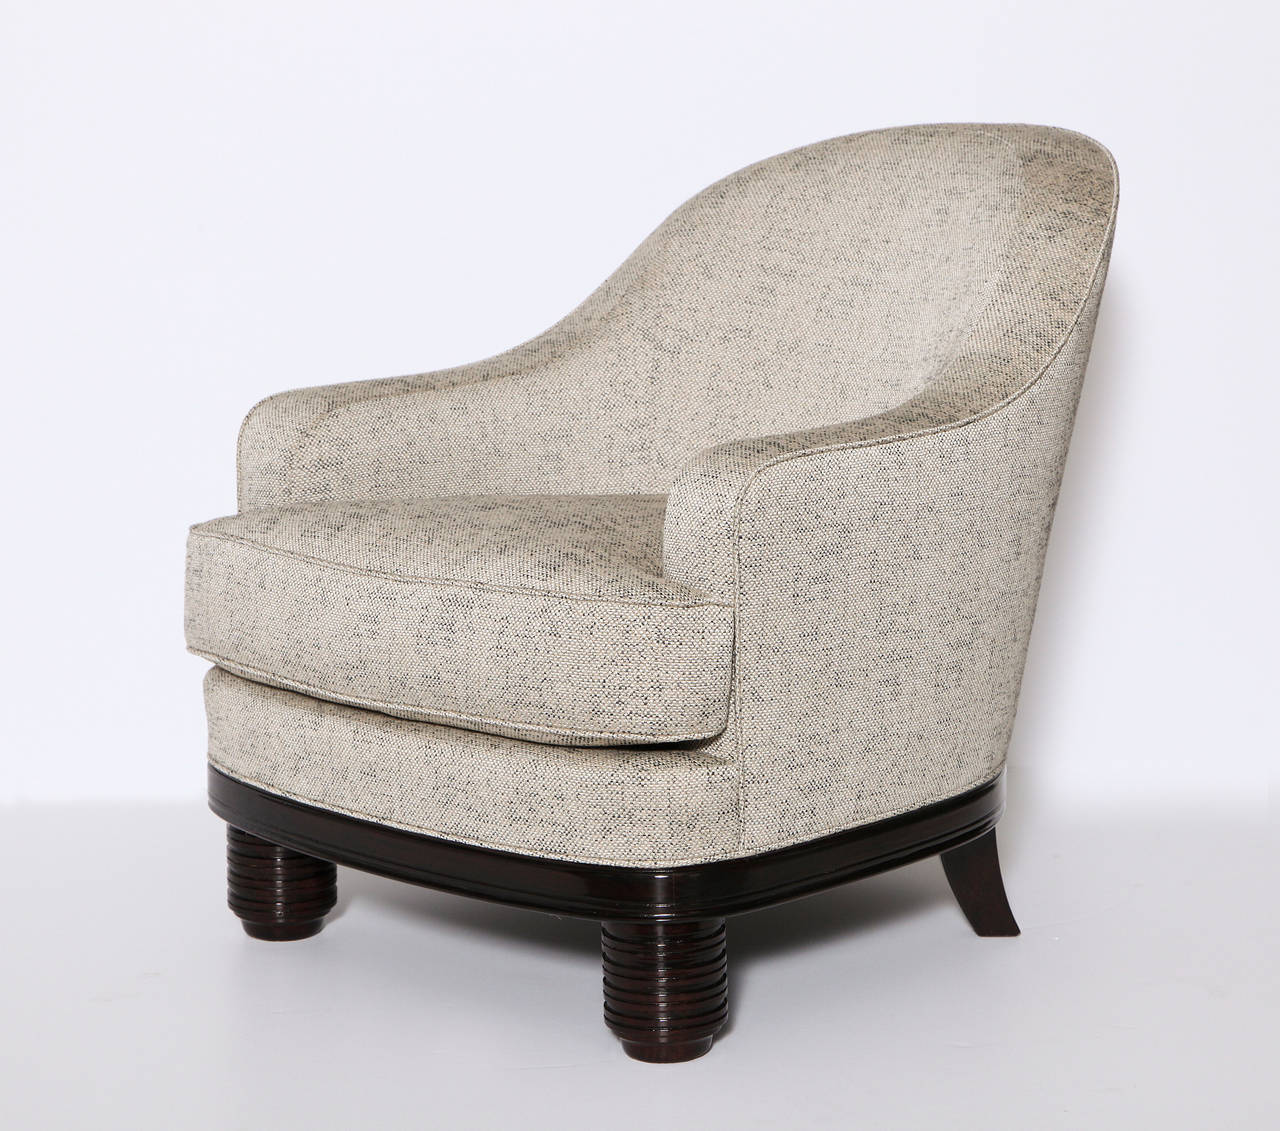 French Paul Follot Pair of Armchairs, France, C. 1927 For Sale